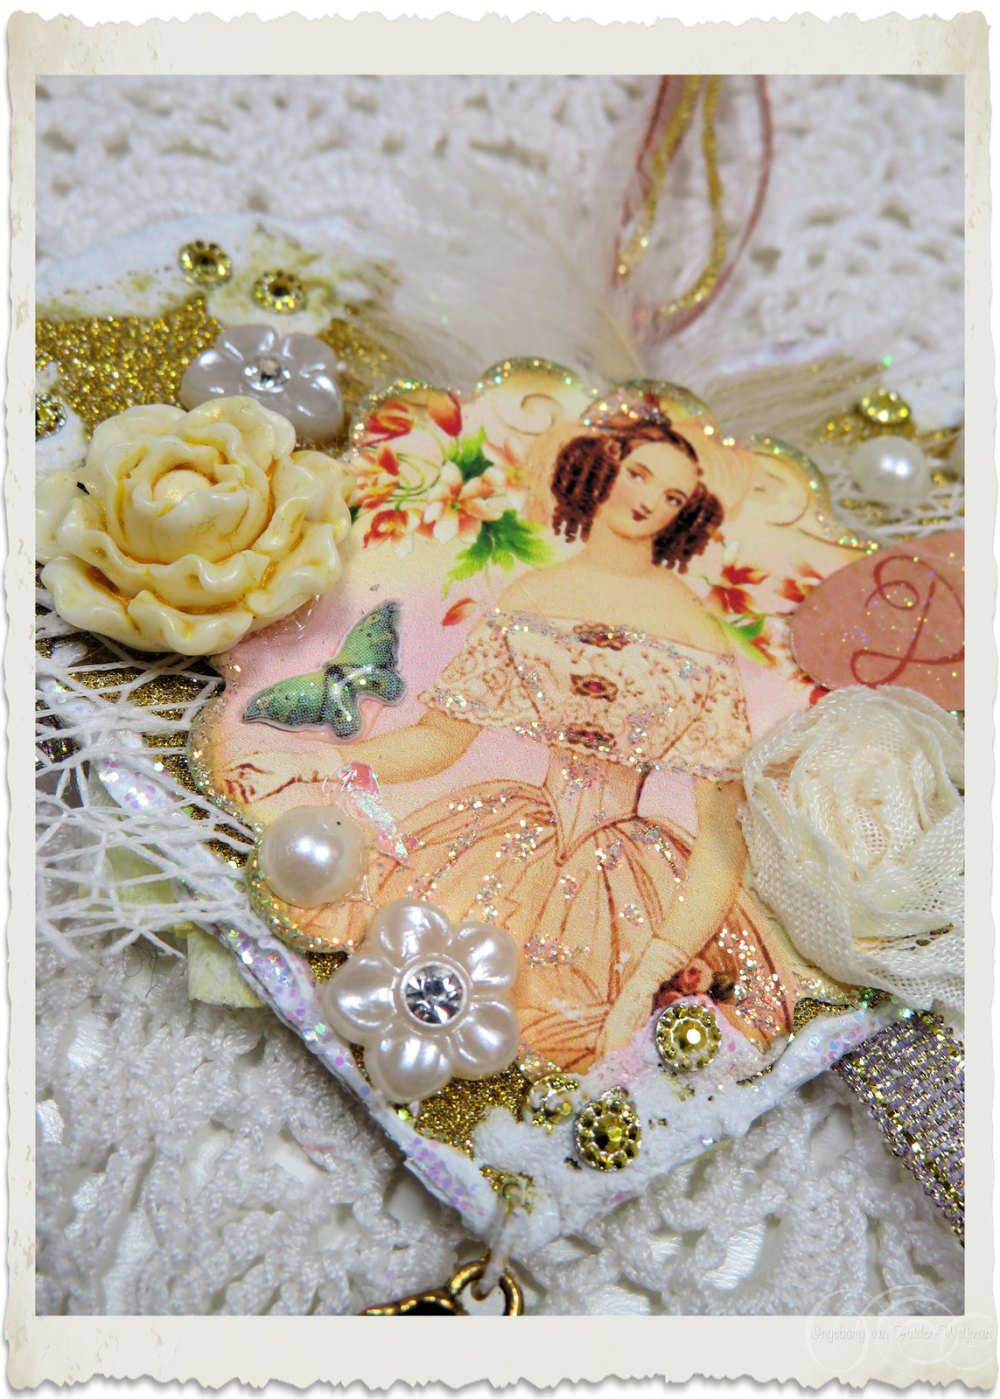 Flowers and bling bling details on Regency style mixed media project by Ingeborg van Zuiden